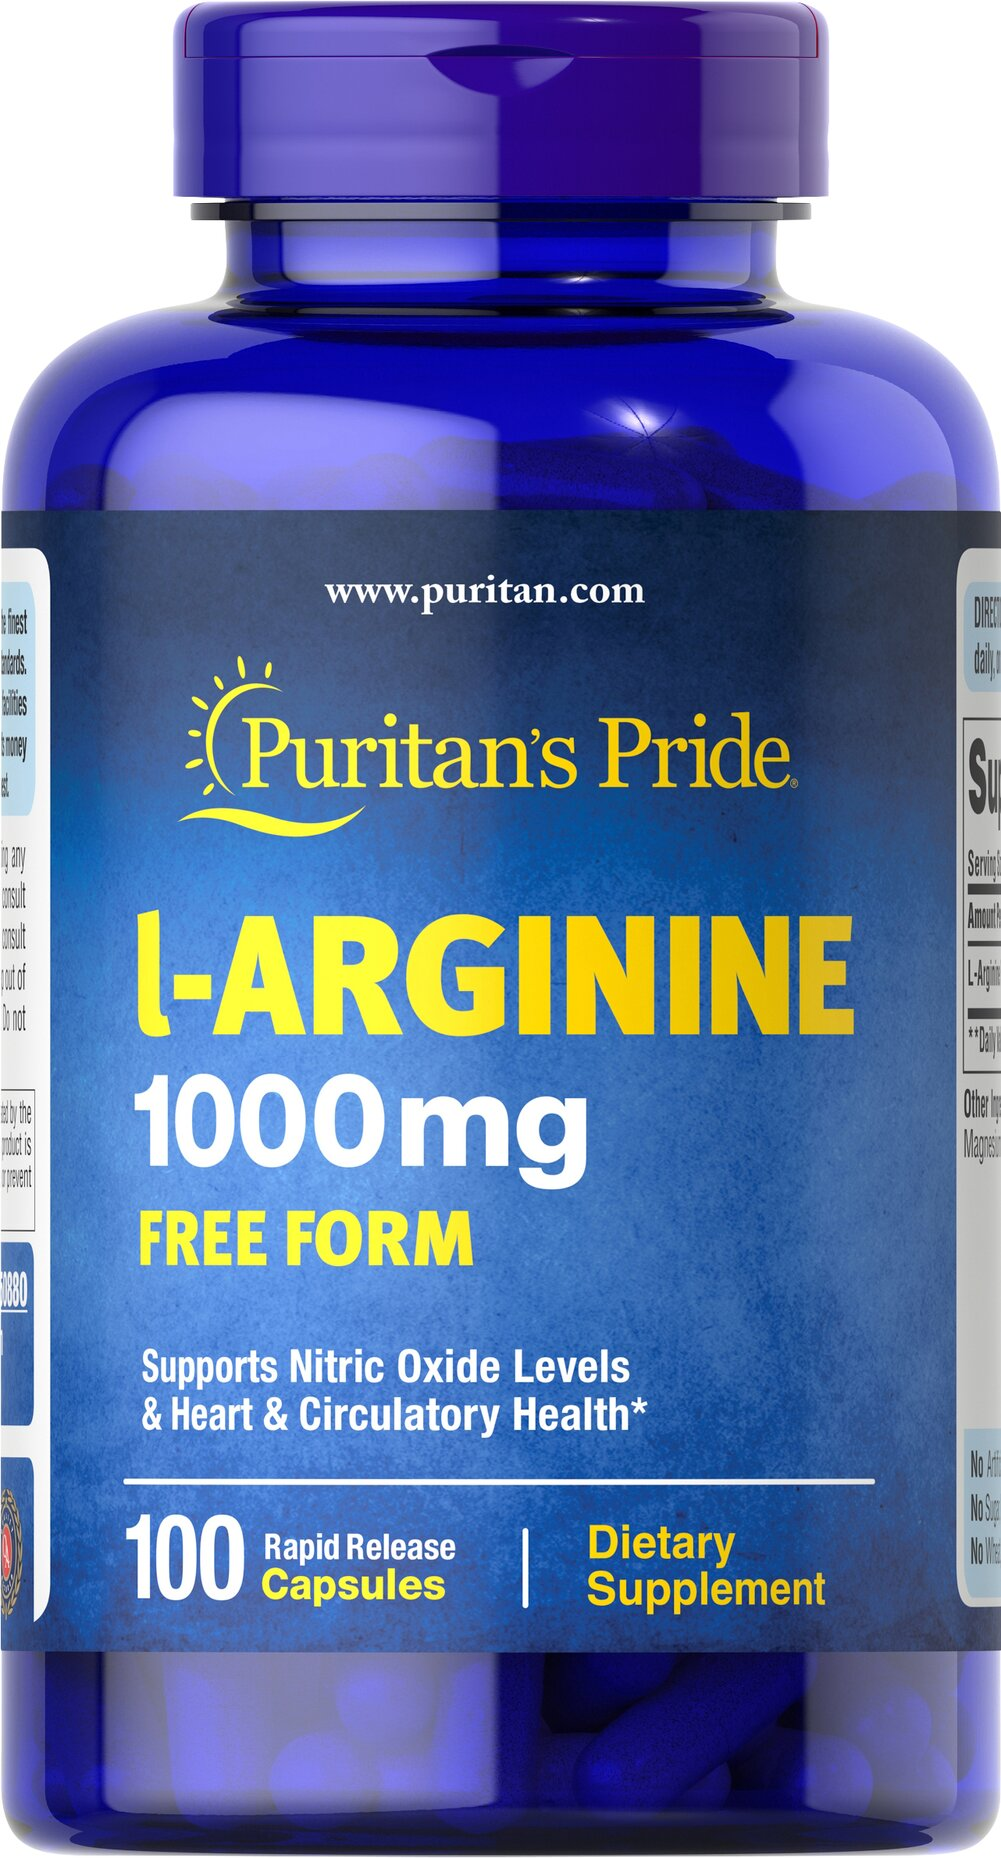 L-Arginine 1000 mg <p>Arginine is one of 20 amino acids, the building blocks of protein.** Arginine can serve as a source of energy, and is involved in various pathways throughout the body.** Arginine supports the effect of exercise and is one of the most important amino acids involved in immune function.** Adults can take one caplet daily. </p> 100 Capsules 1000 mg $21.59